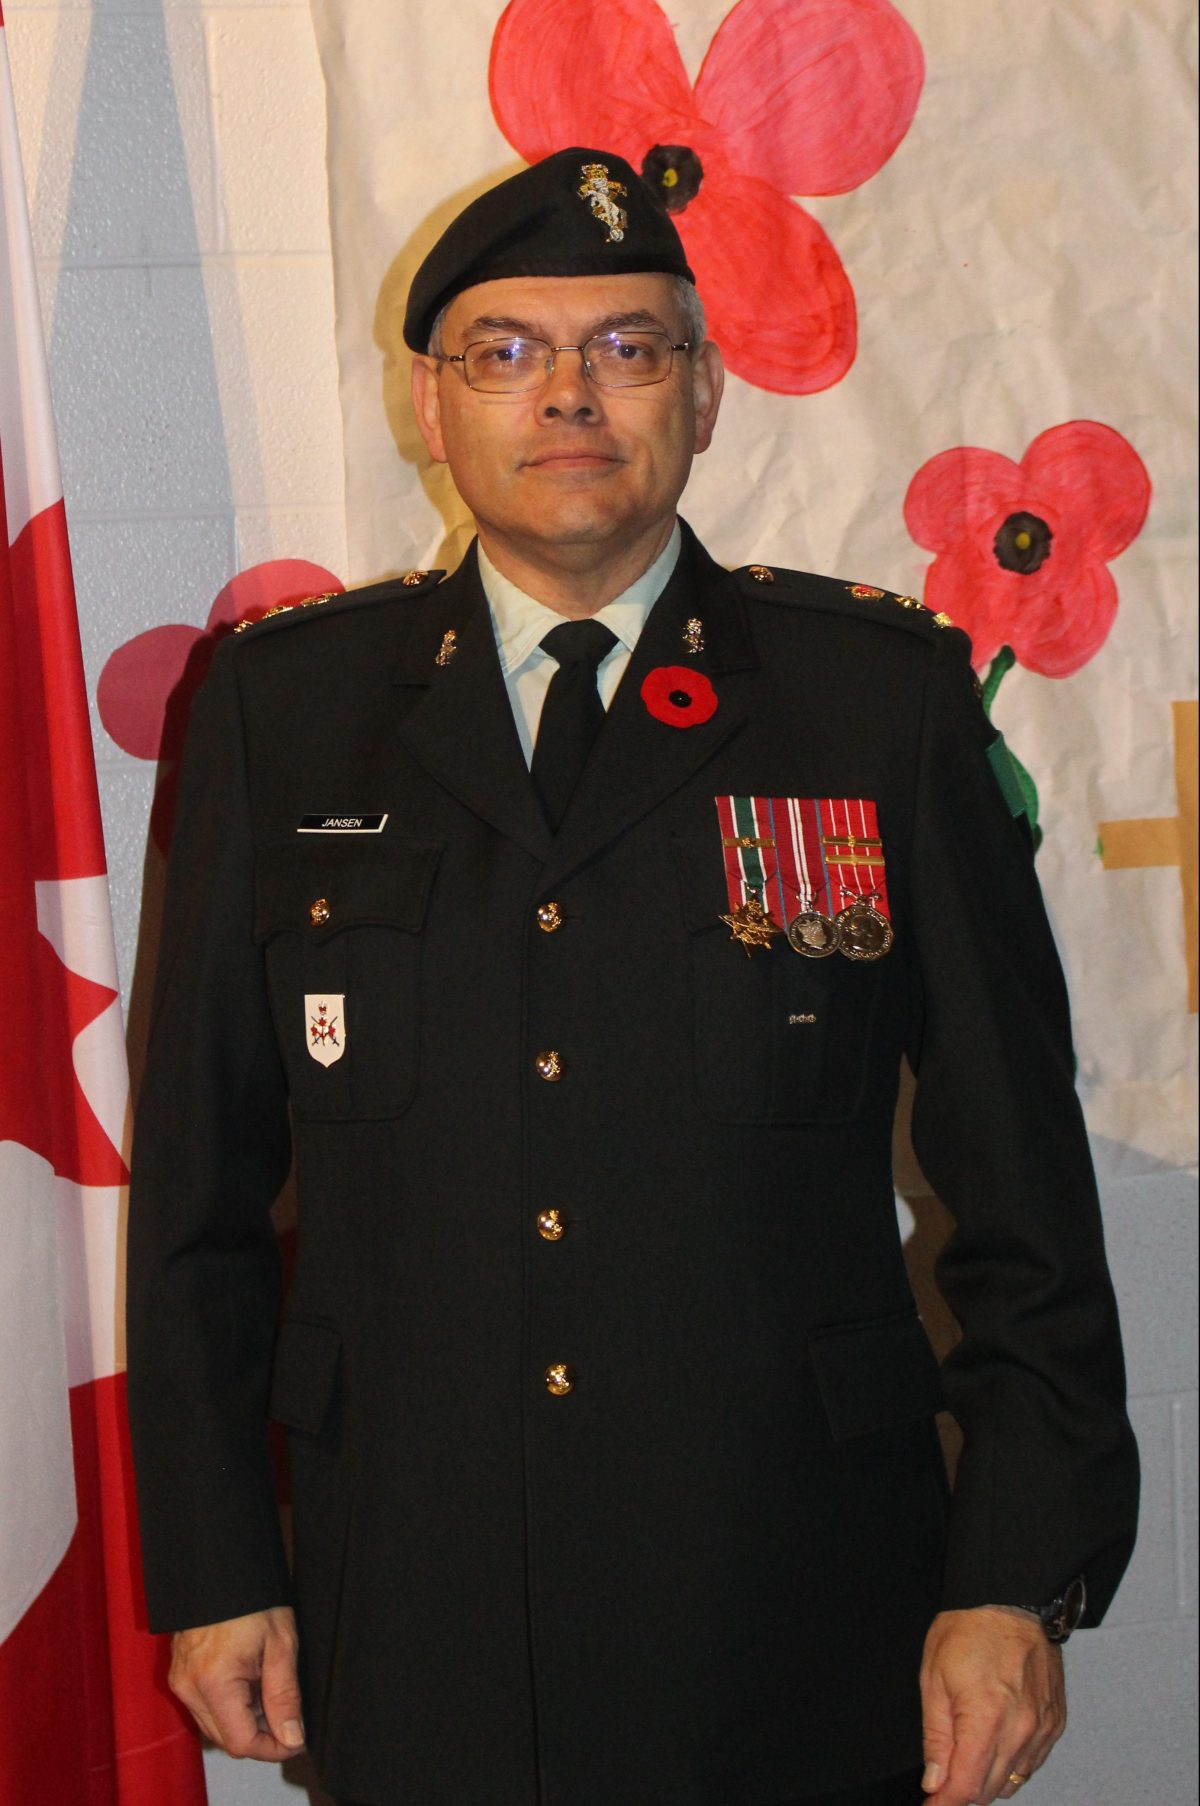 Remembrance Day